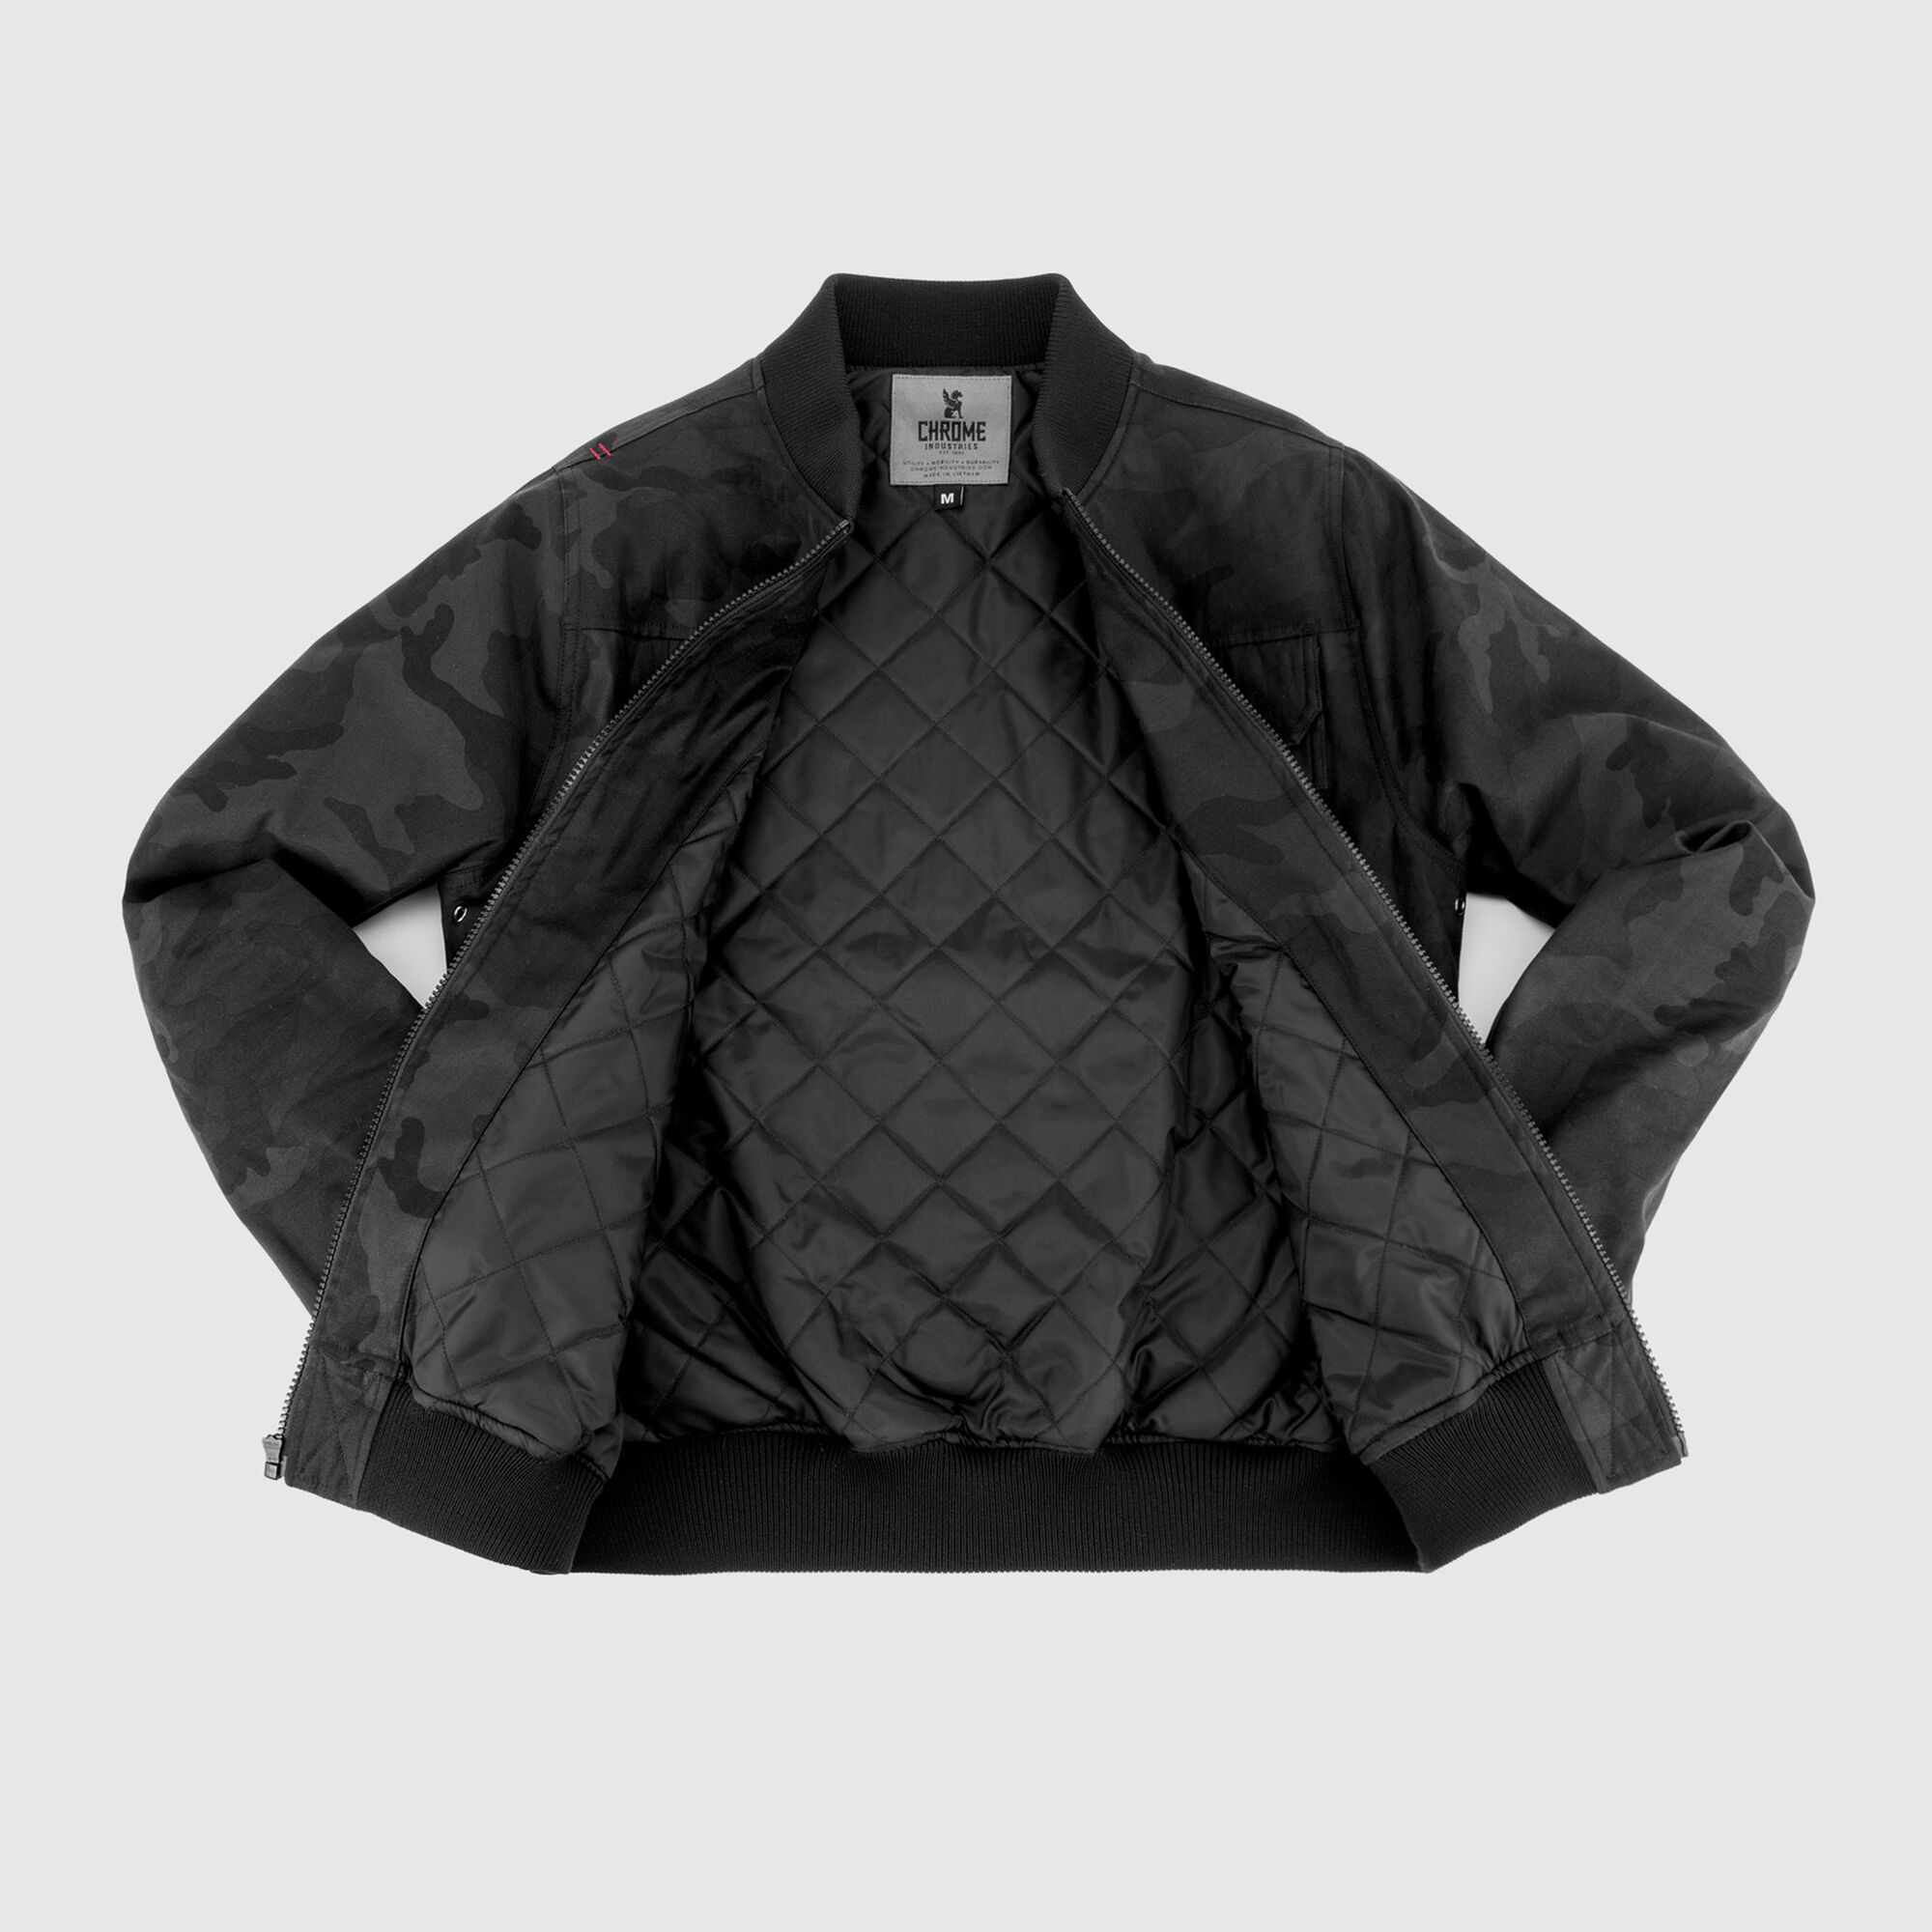 c4906d0229412 Utility Bomber Jacket - Form Meets Function - Long Sleeve | Chrome ...